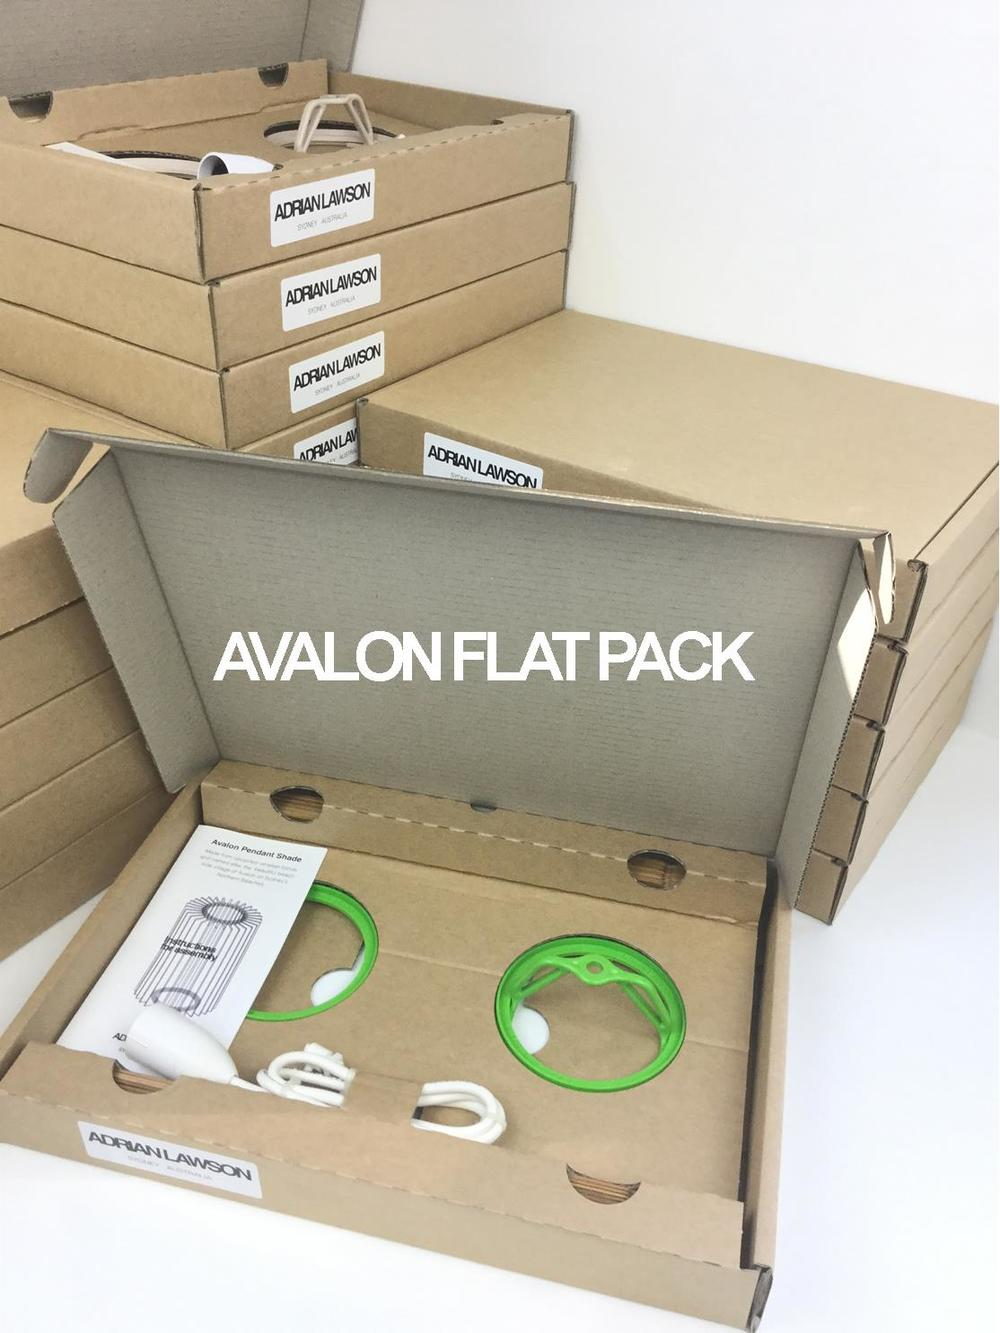 Avalon 390 #7 Flat Pack